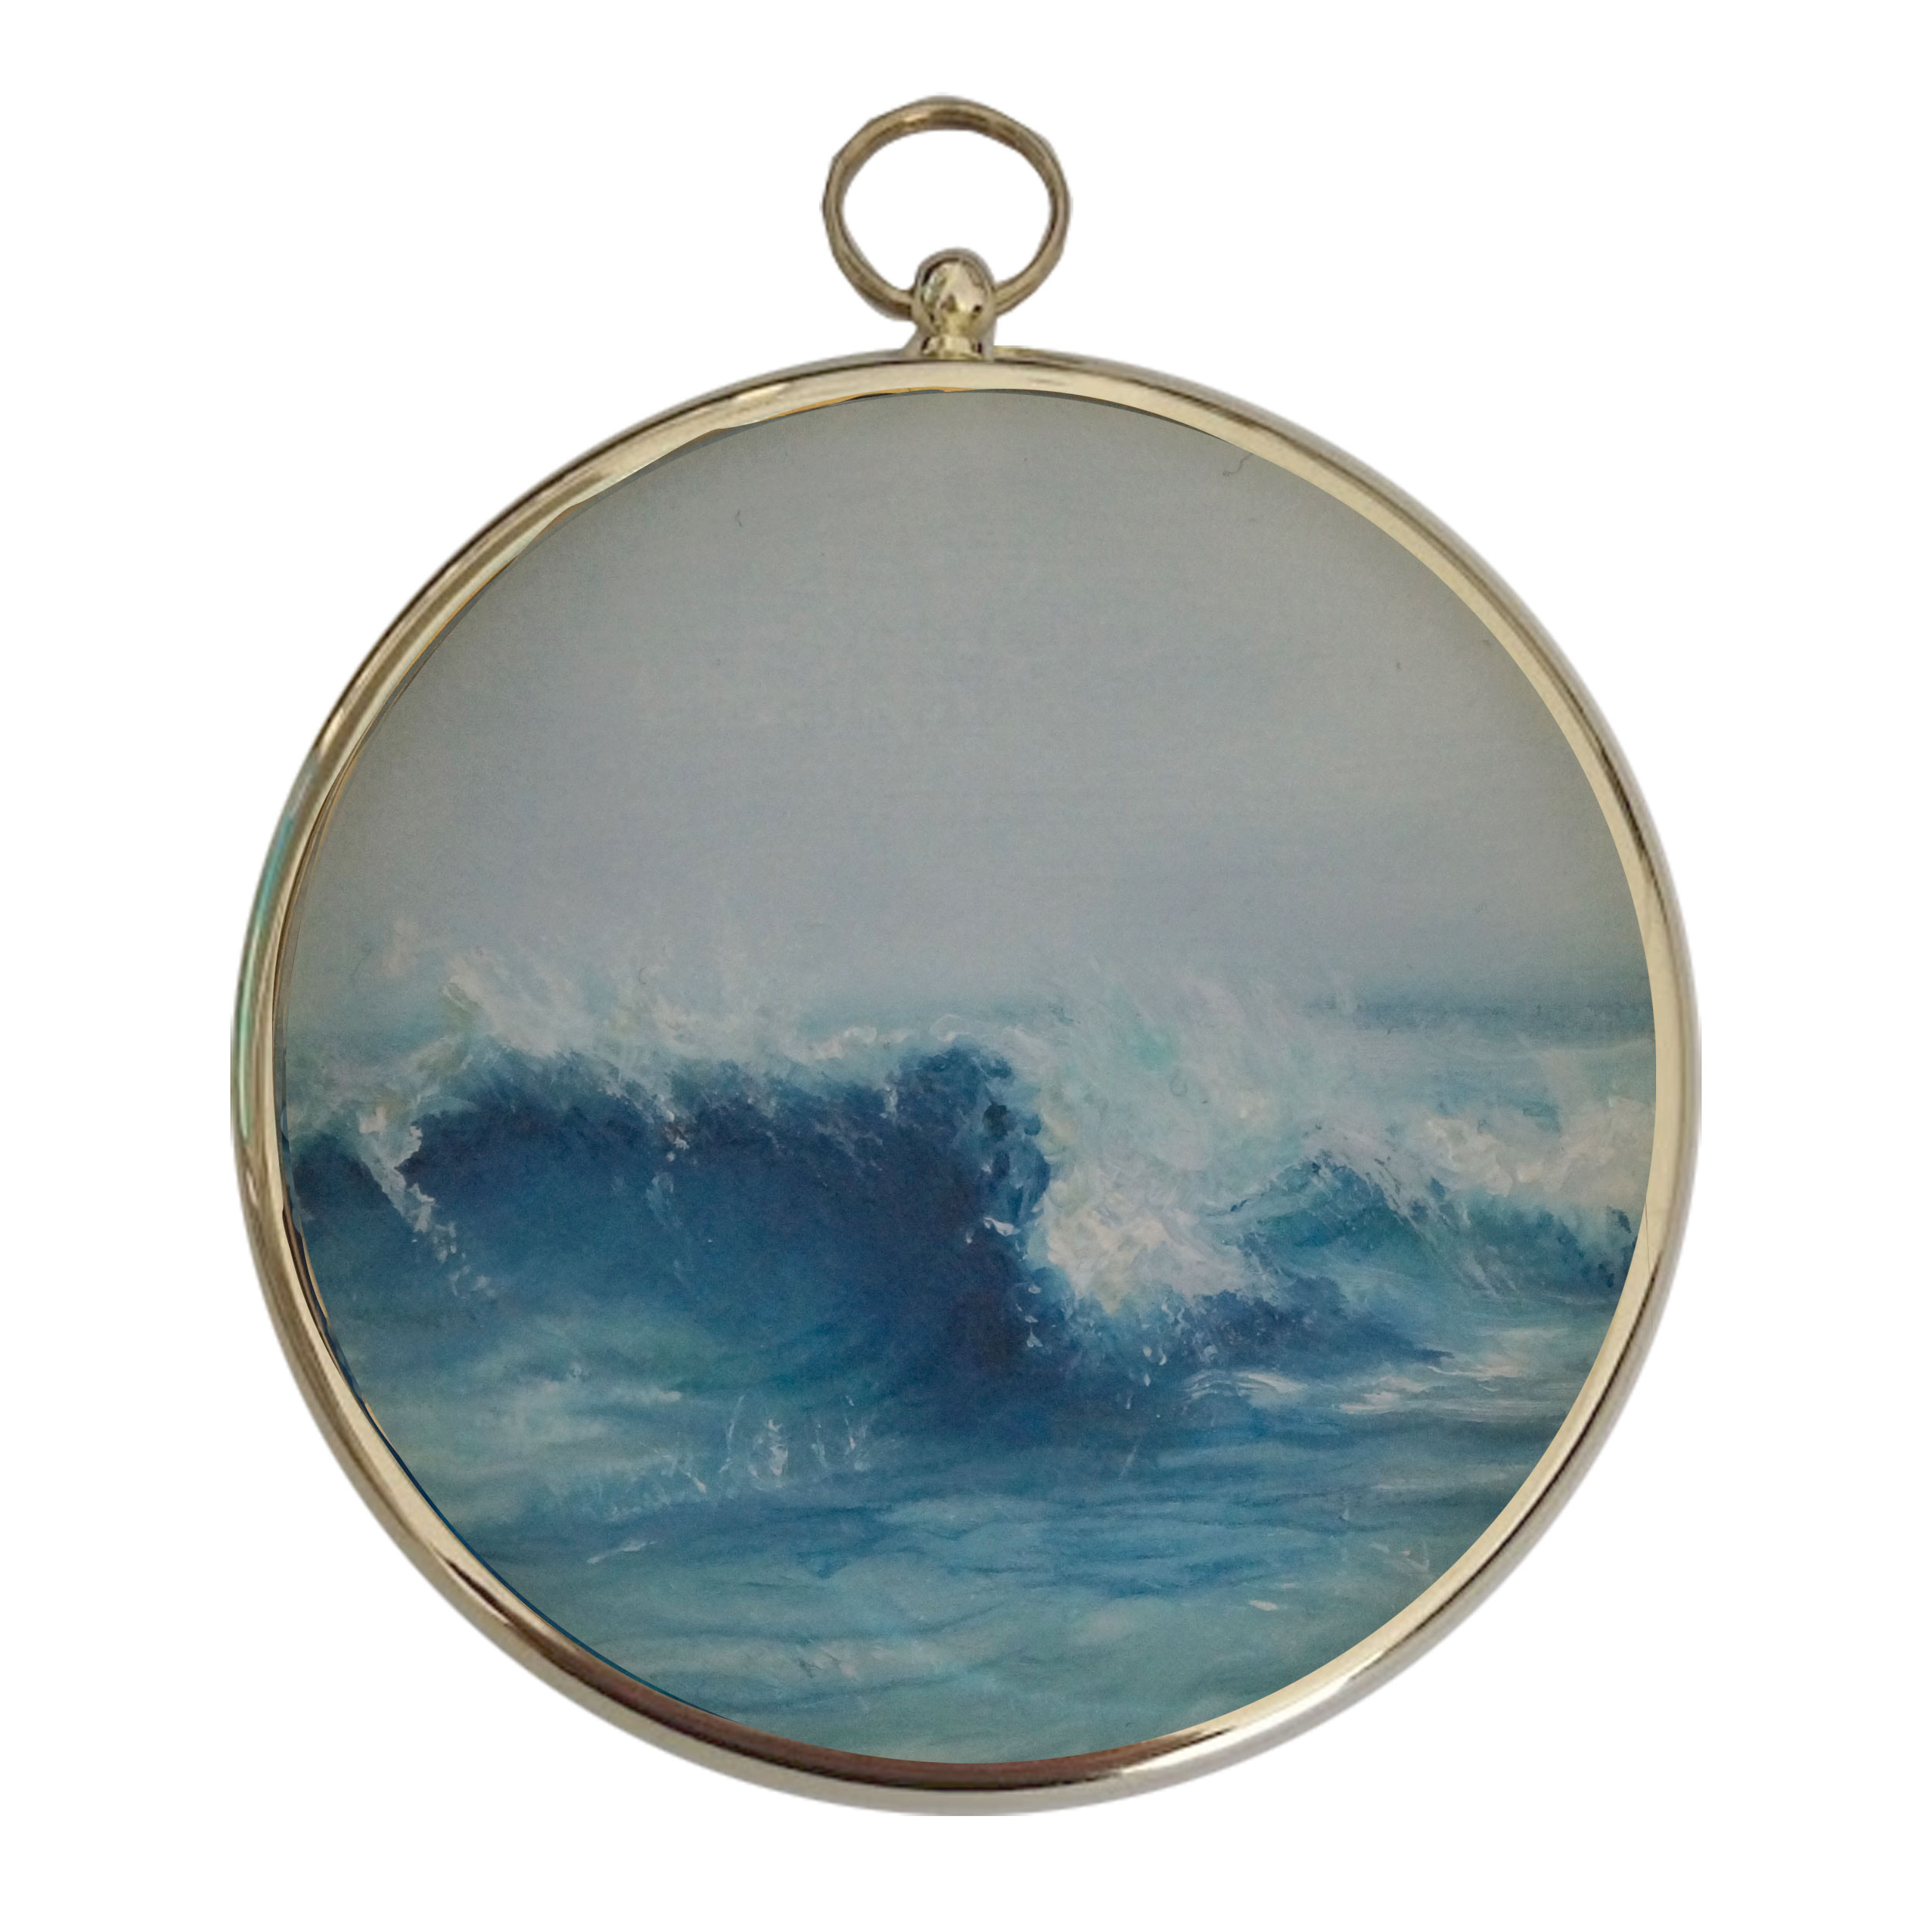 Breaking Wave - Miniature Seascape Painting